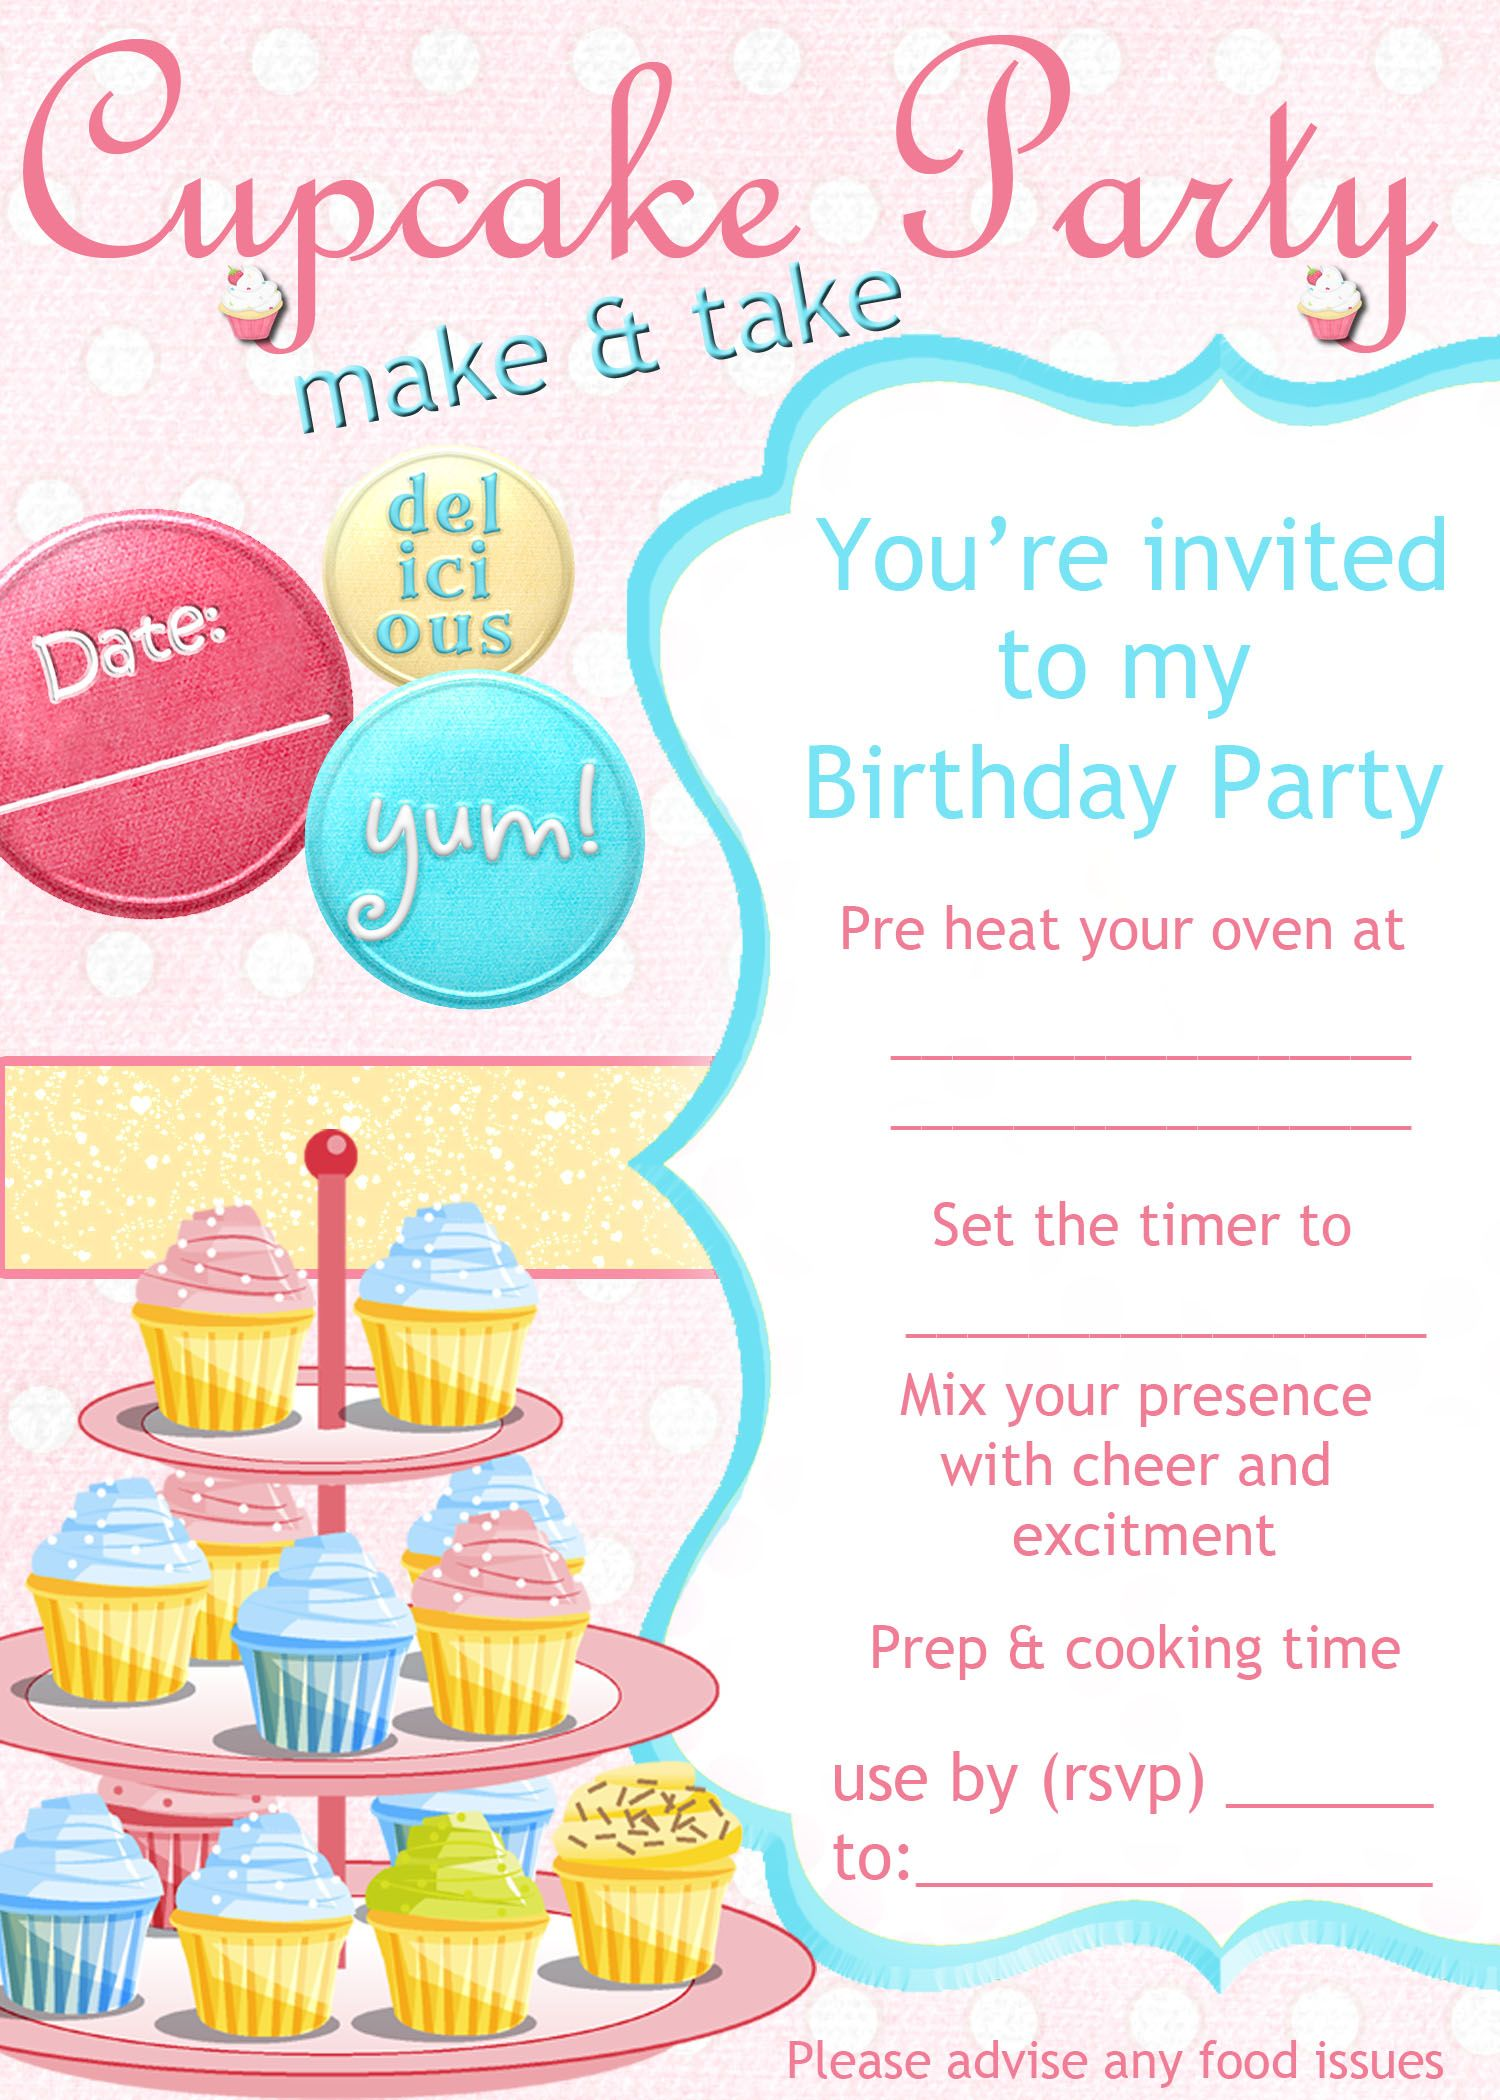 Cupcake Decorating Party Invitation | Putting on a Party Store ...